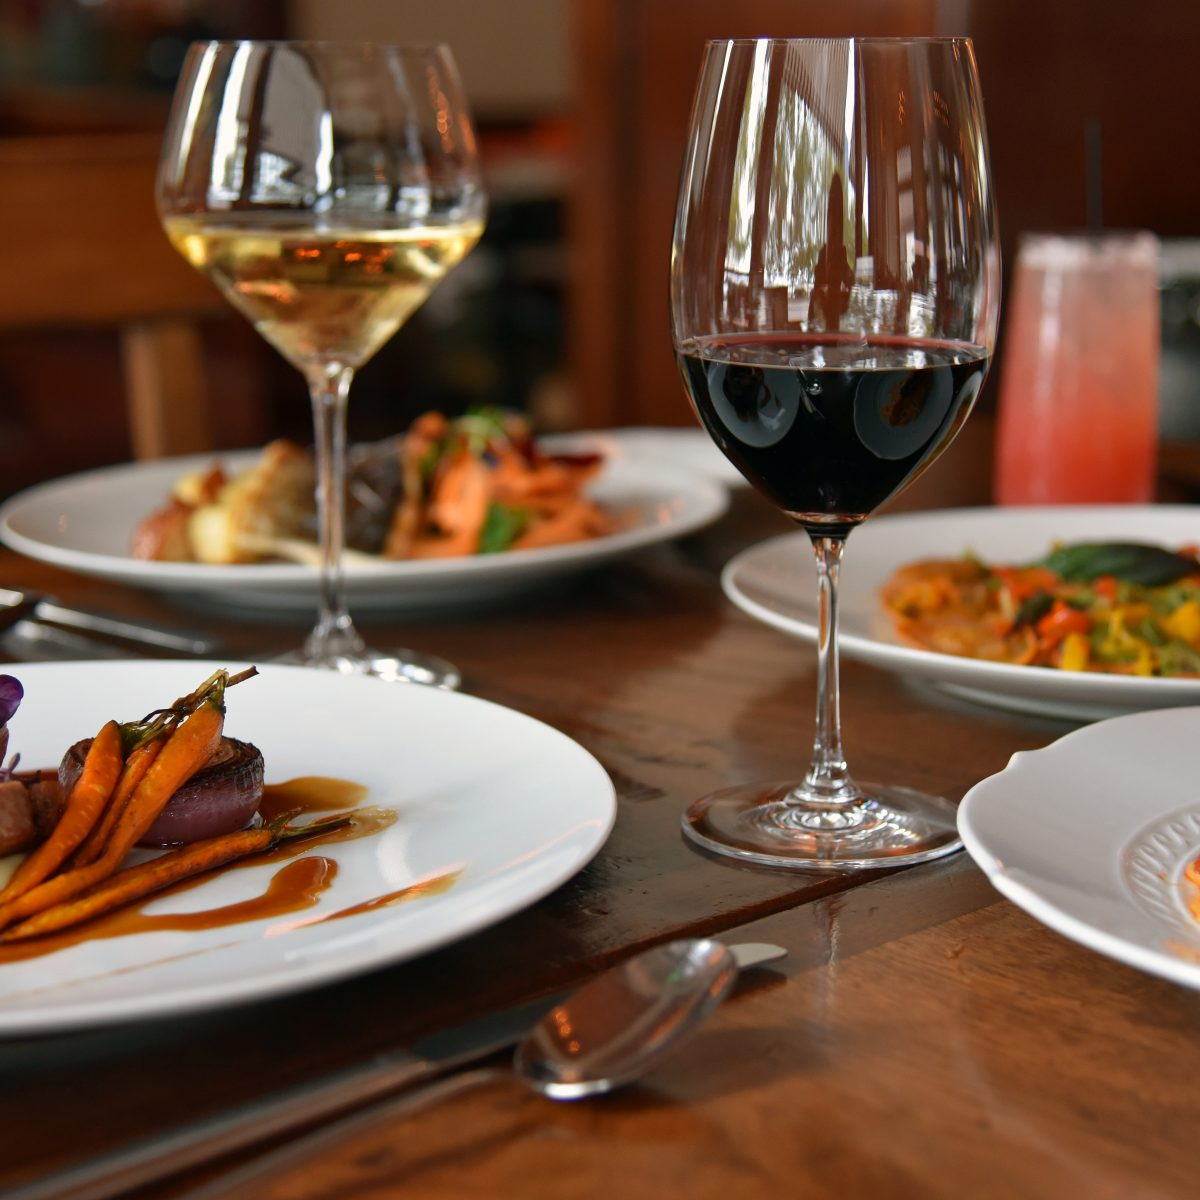 Several plates of pasta, seafood and Italian specialties with wine on a wooden table